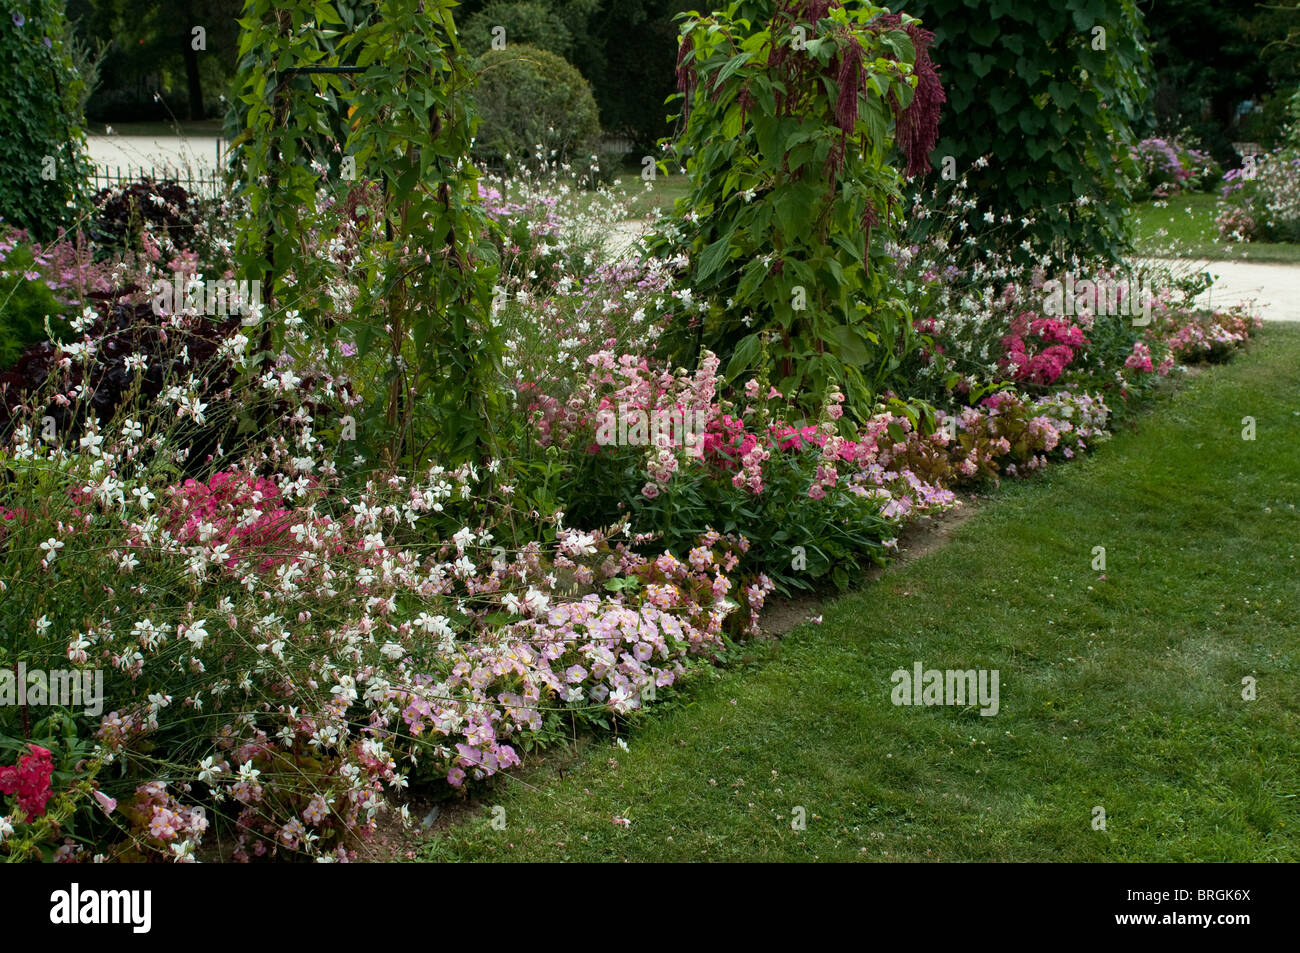 Mixed border with Gaura lindheimeri and petunias - Stock Image